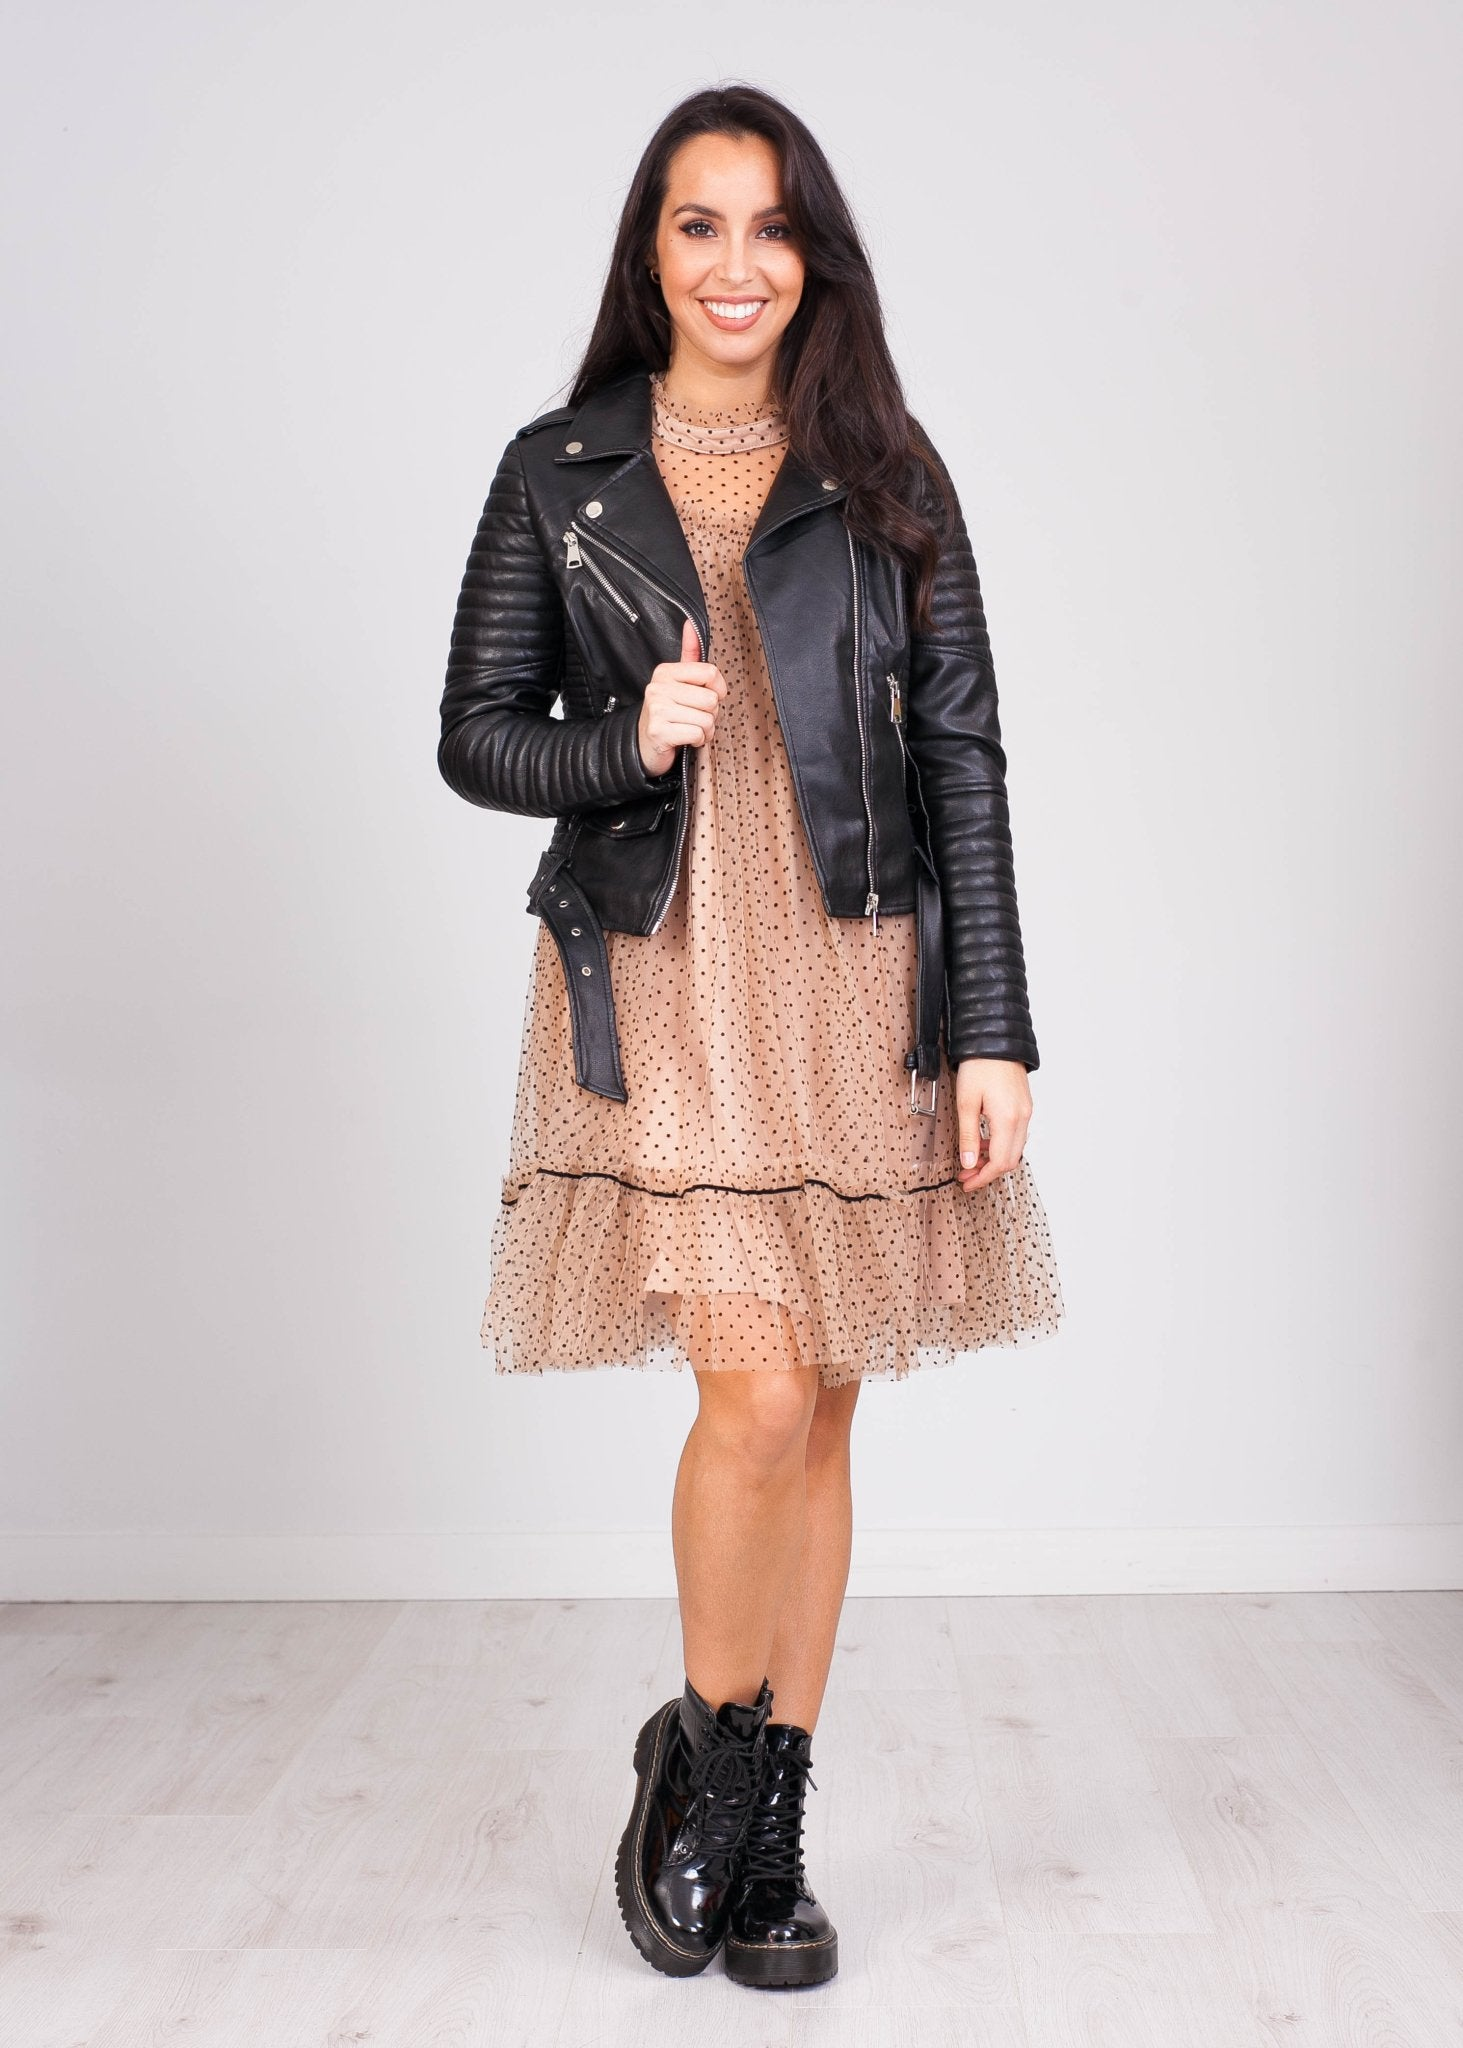 Priya Tan & Black Polka Dot Mini Dress - The Walk in Wardrobe